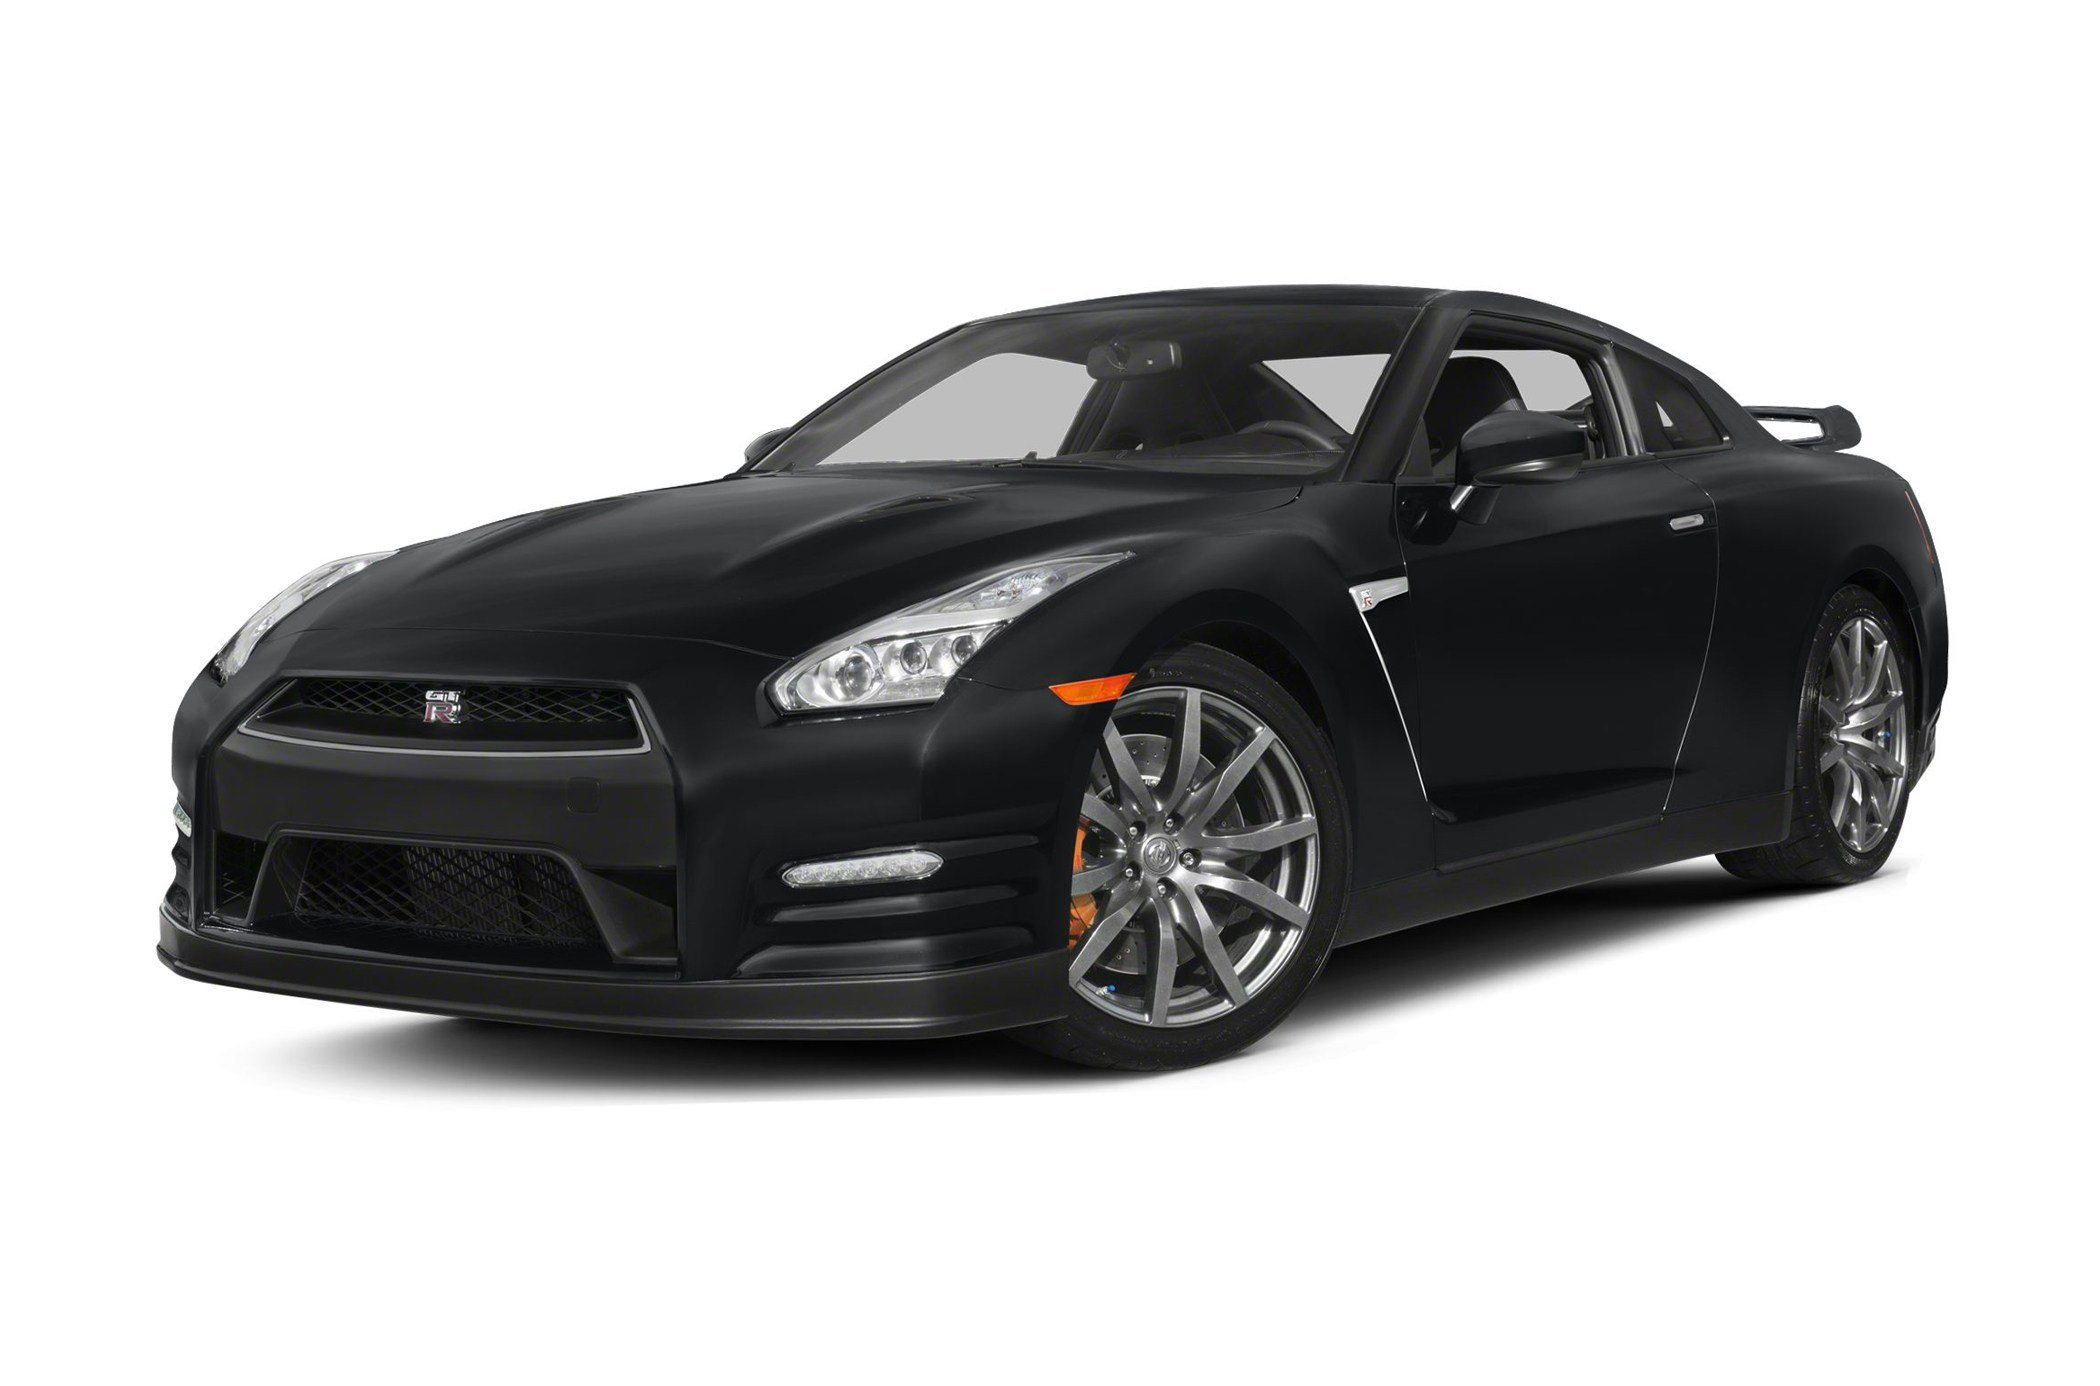 Latest Nissan Gt R 2007 2017 Prices In Pakistan Pictures And Free Download